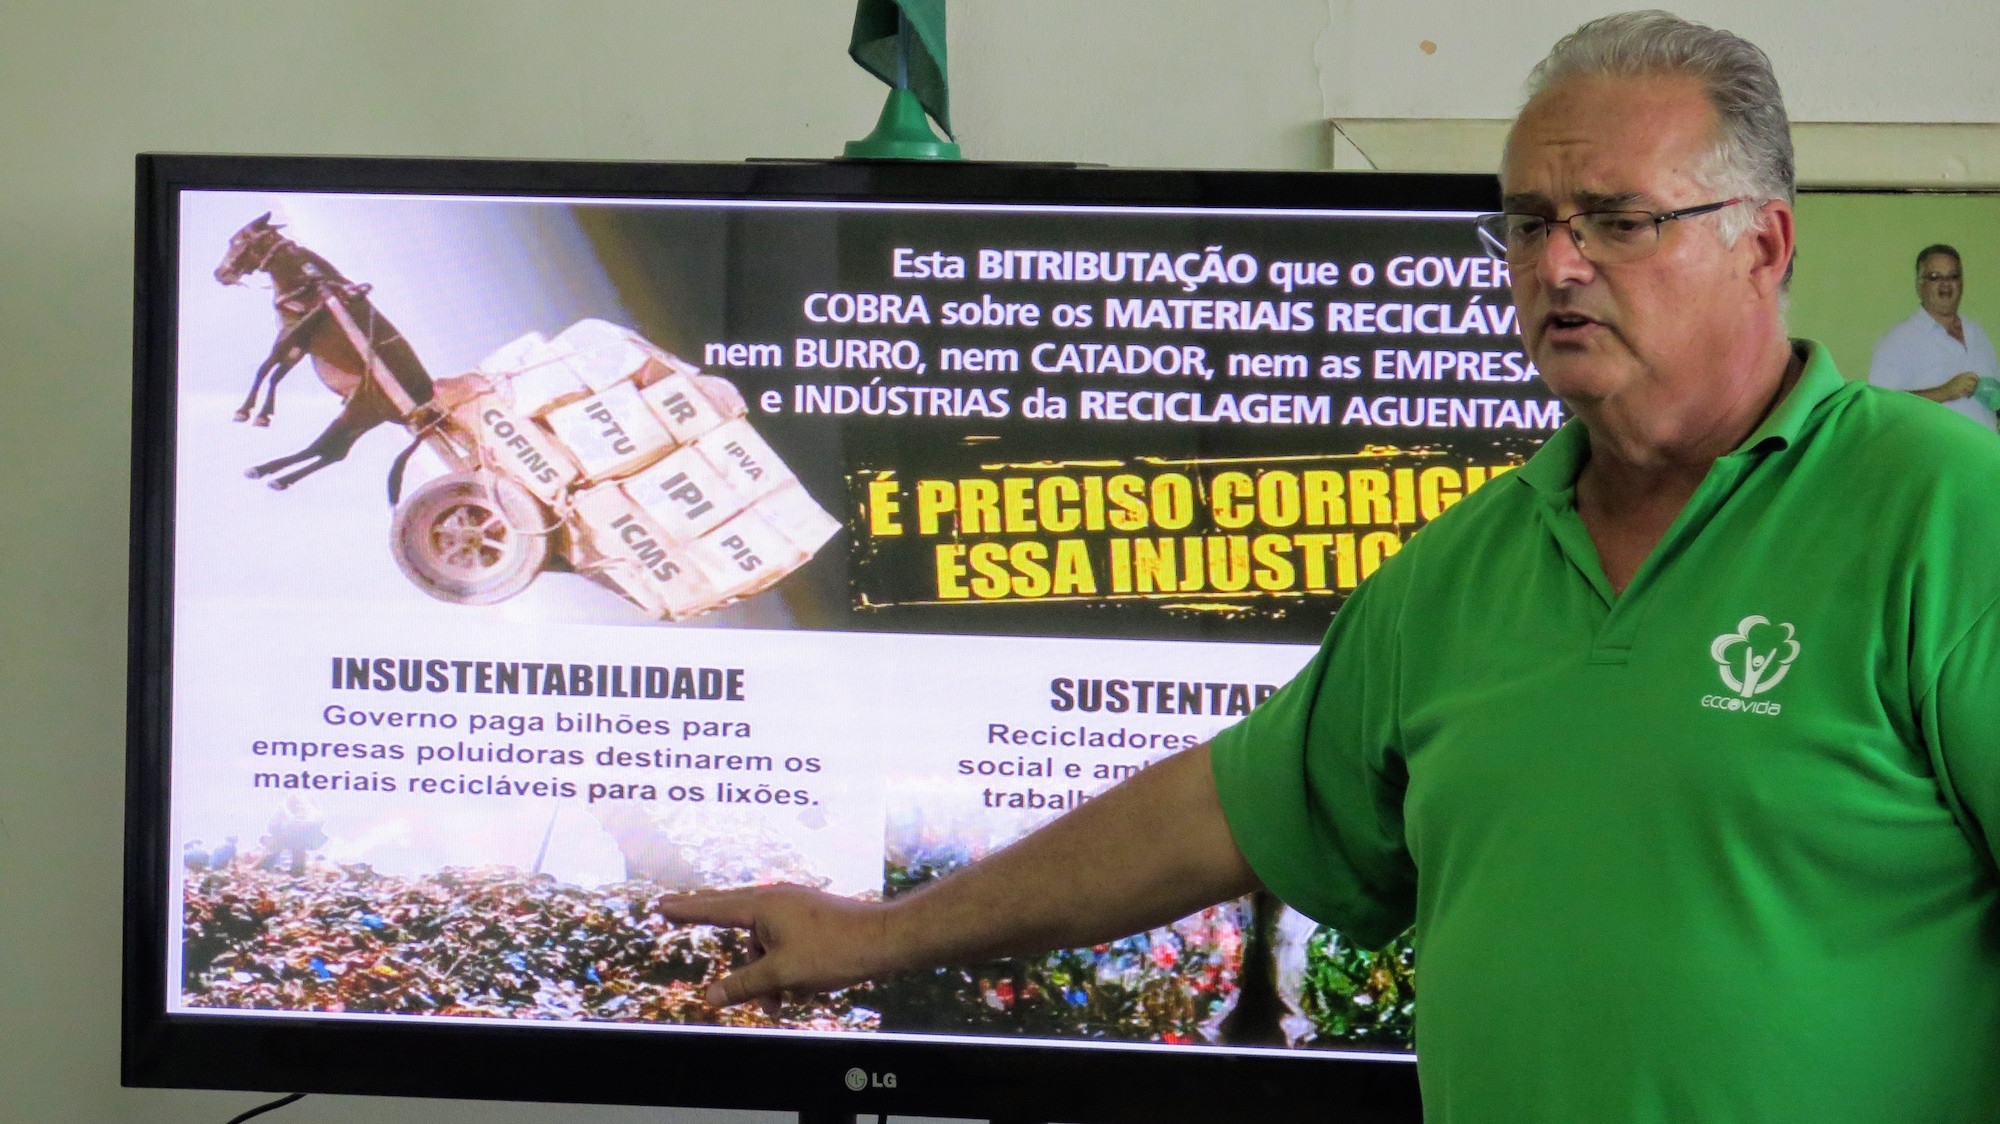 Edson describes the inefficient system that produces so much waste of recyclable material in Rio